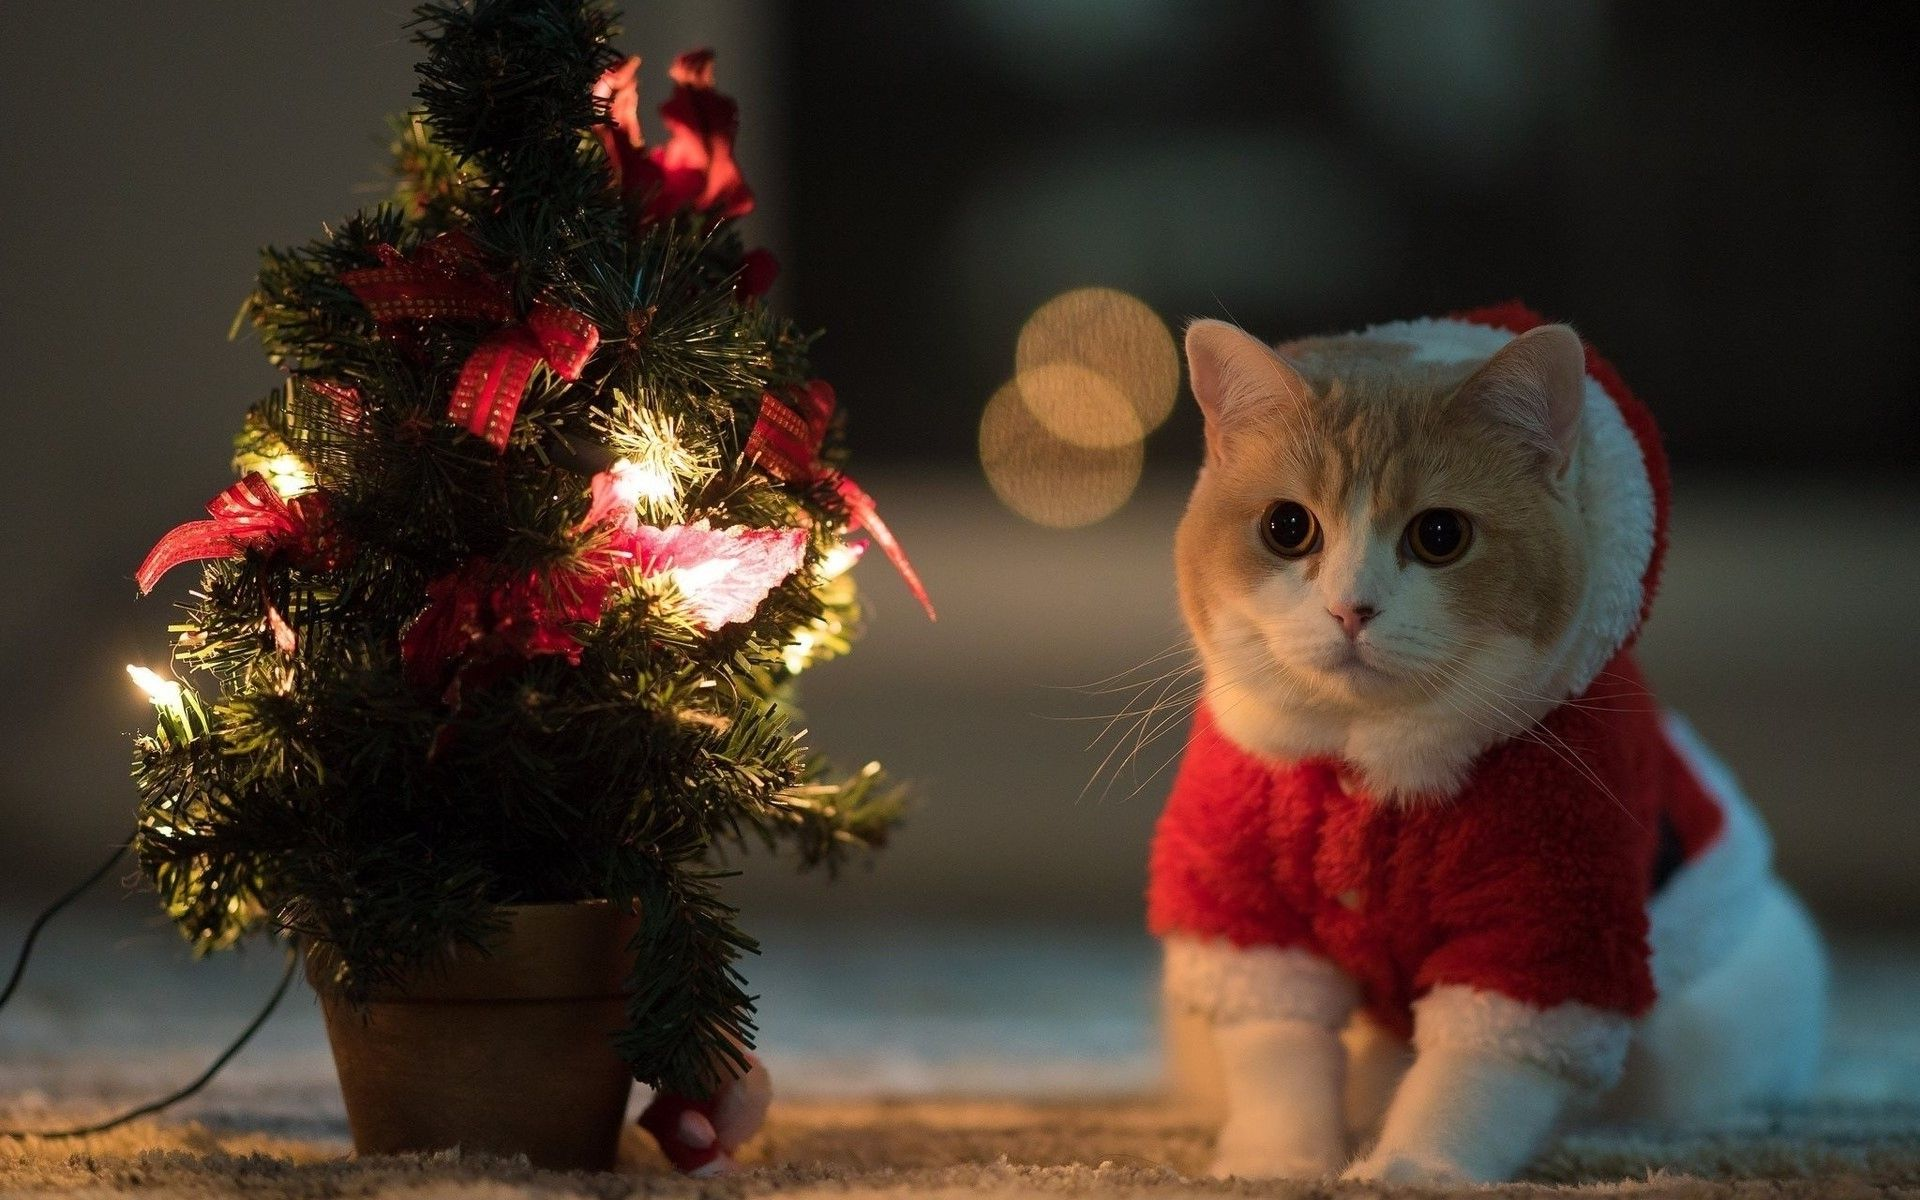 Cute Christmas Cat Desktop Wallpapers Top Free Cute Christmas Cat Desktop Backgrounds Wallpaperaccess